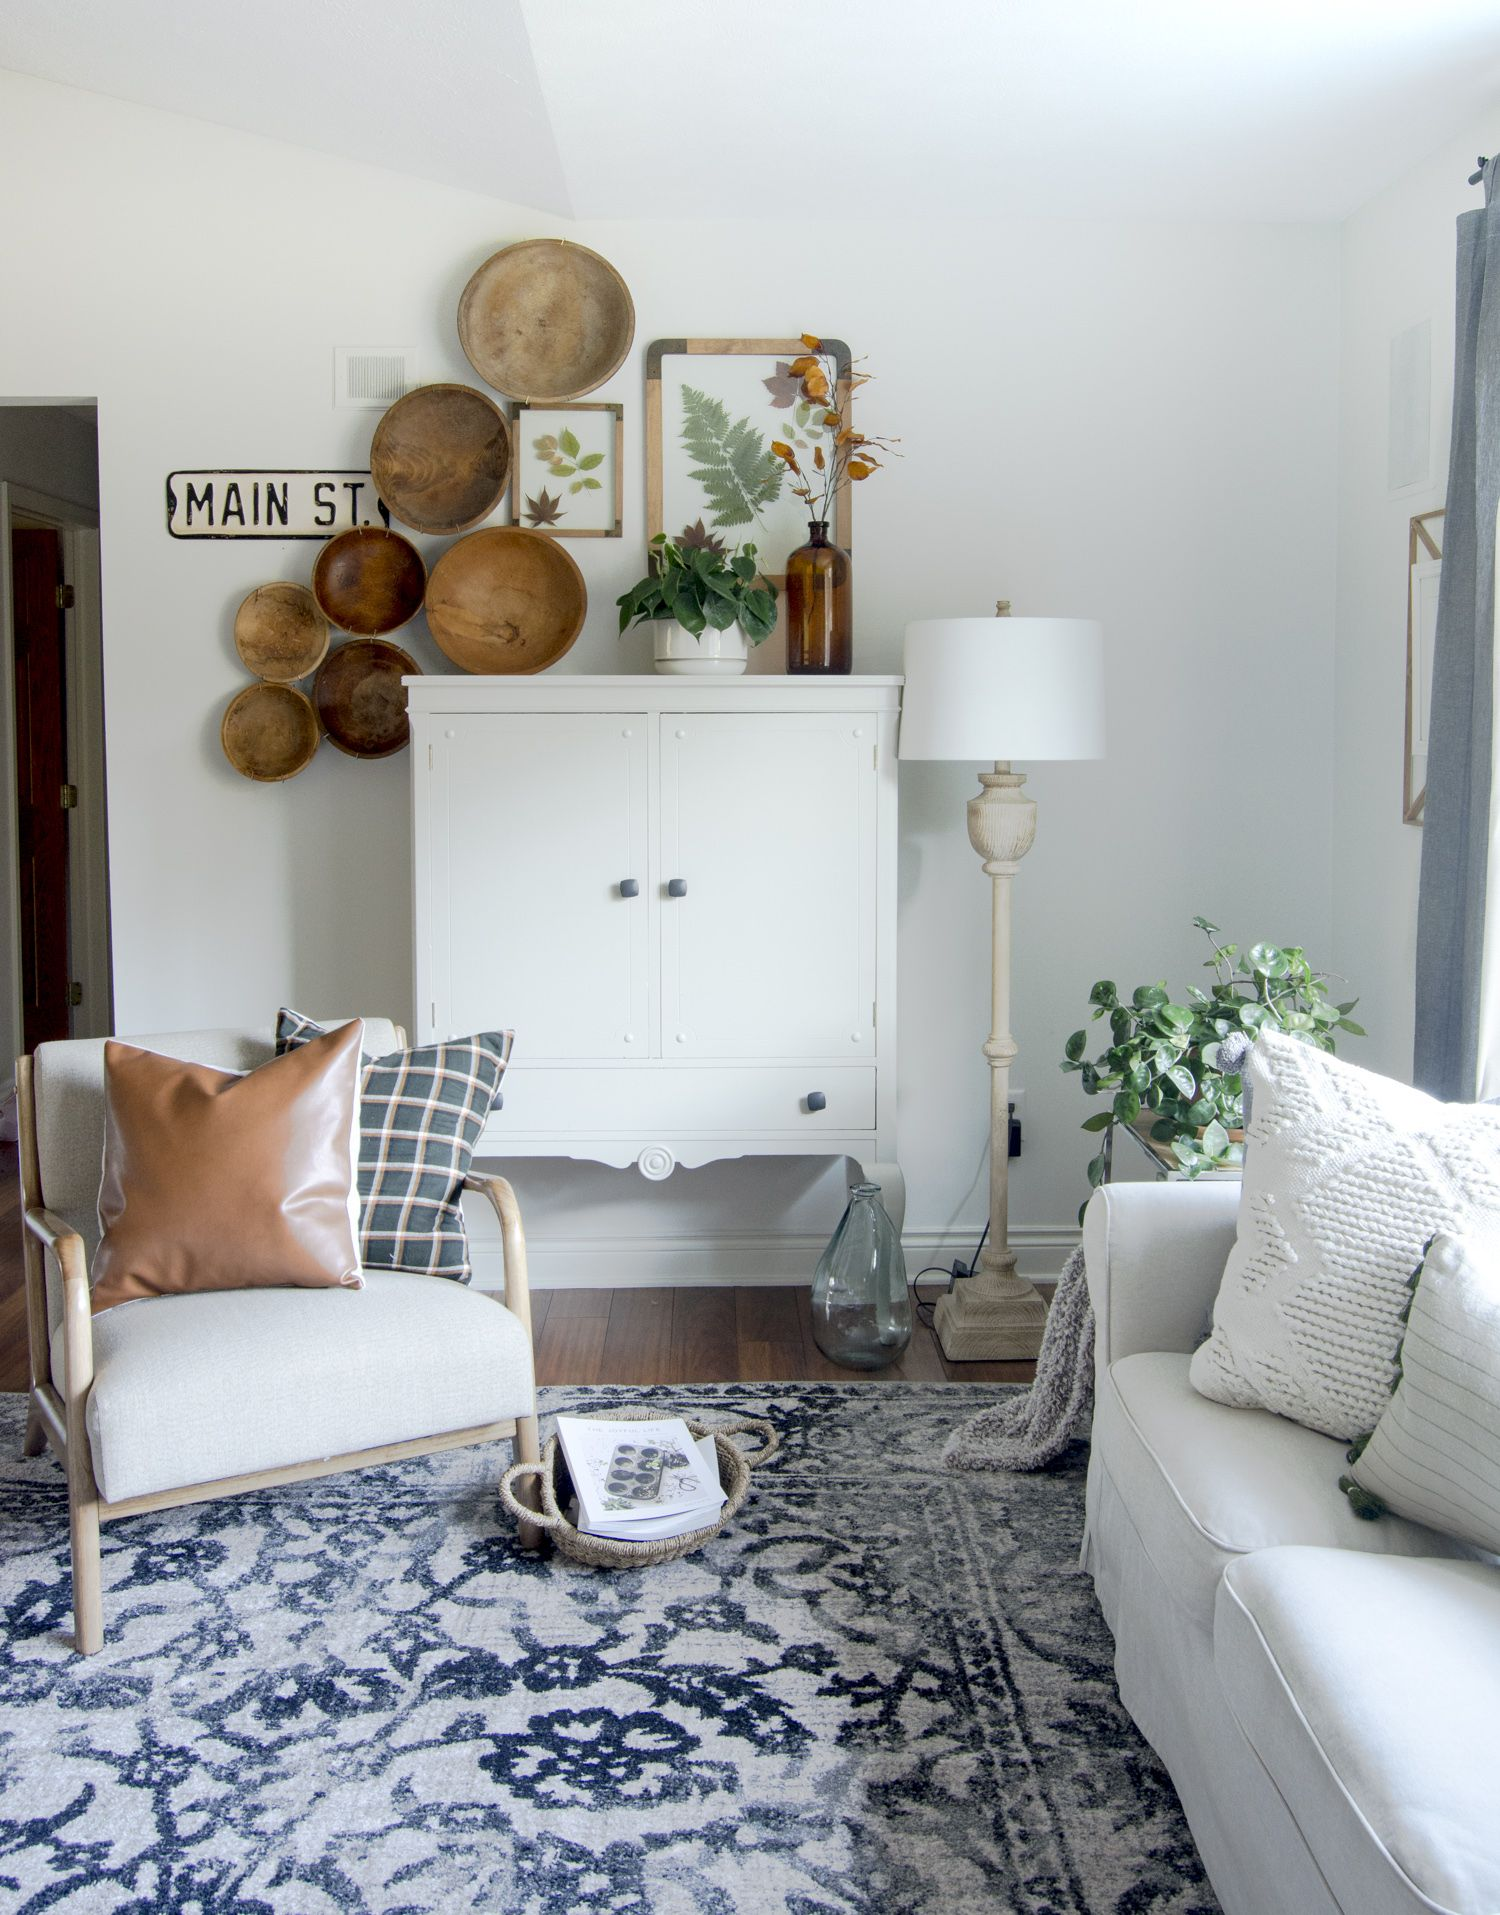 Do you love the look of designer rugs, but can't afford the price tag? Here are beautiful discount rugs: any size, any room, any budget. #fromhousetohaven #arearugs #designerrugs #discountrugs